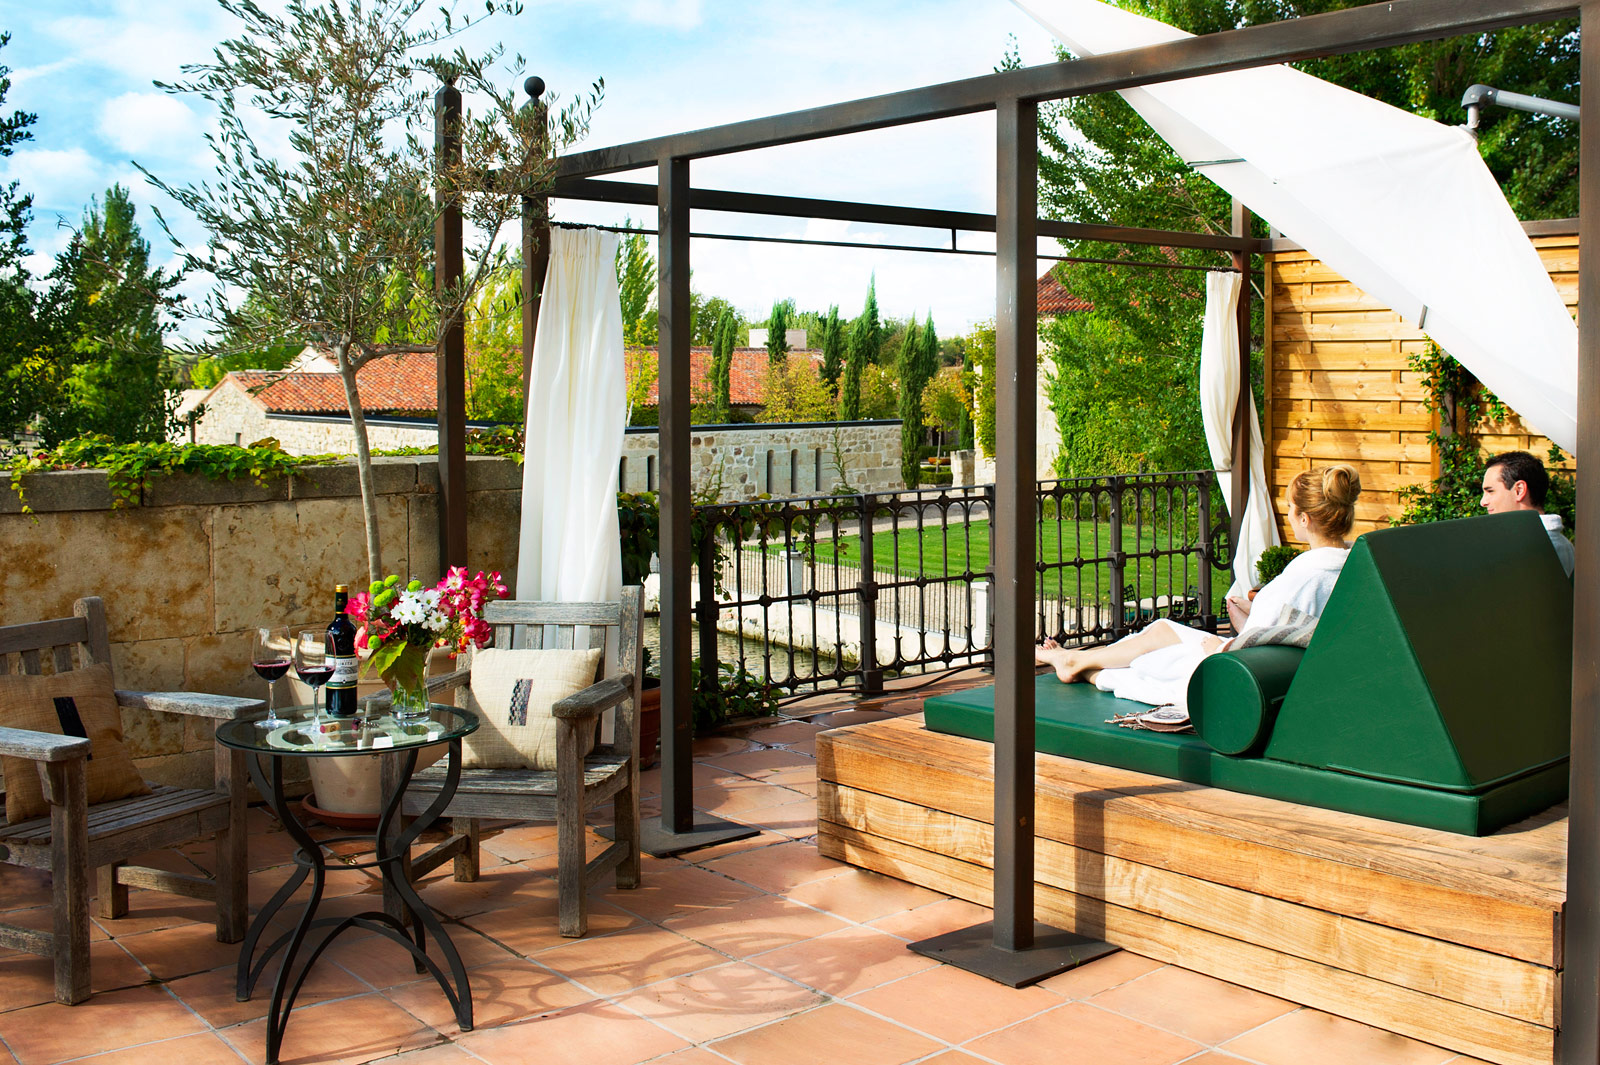 Hacienda-Zorita-Wine-Hotel-and-Spa-outdoors